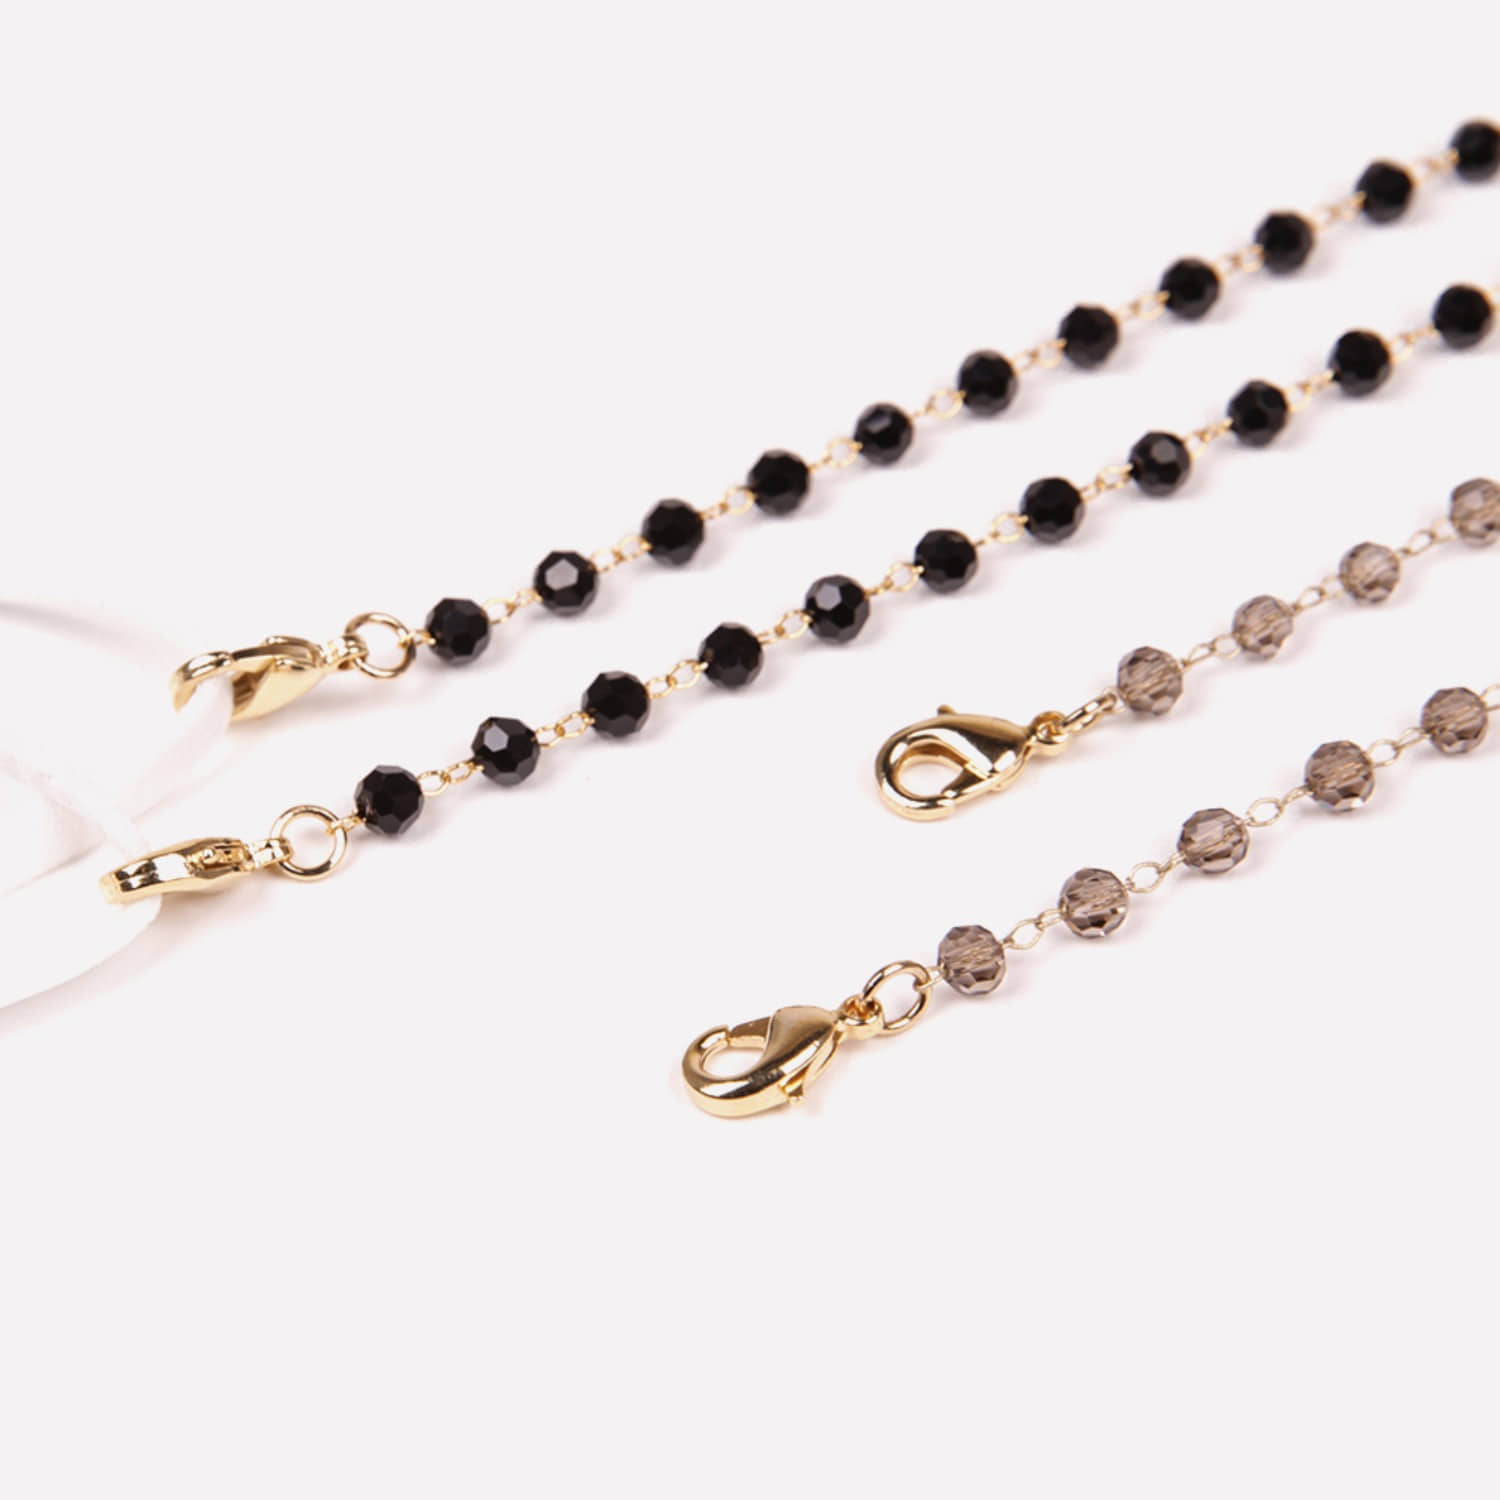 M.Crystal Chain _ 2 color (Grey, Black)